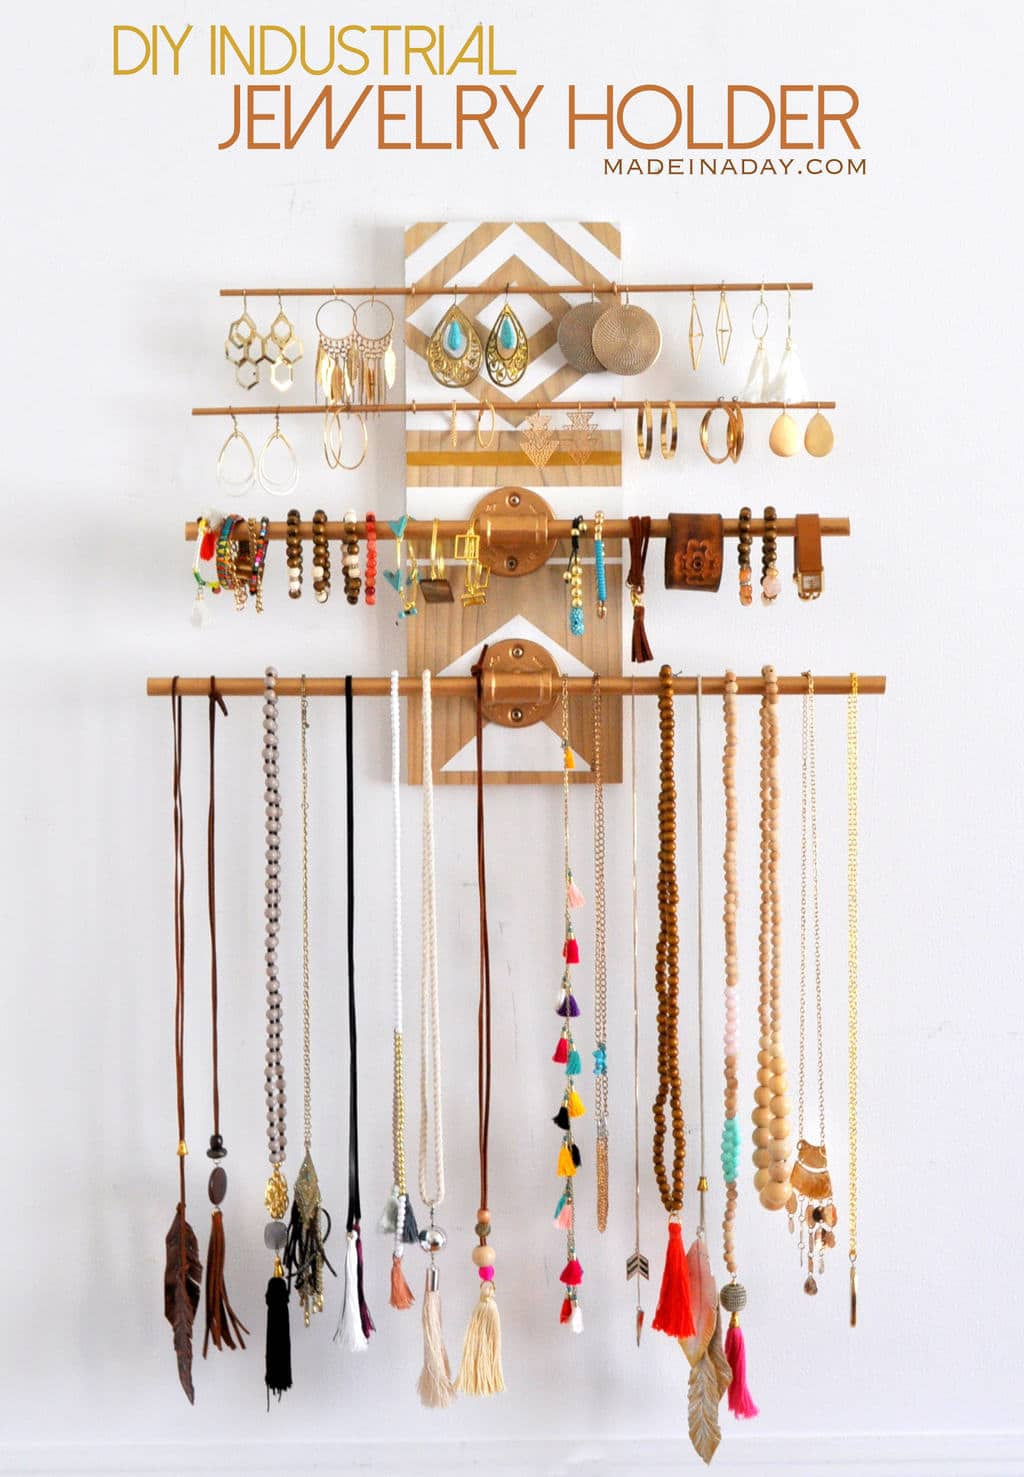 DIY Industrial Jewelry Organizer Rack madeinaday.com